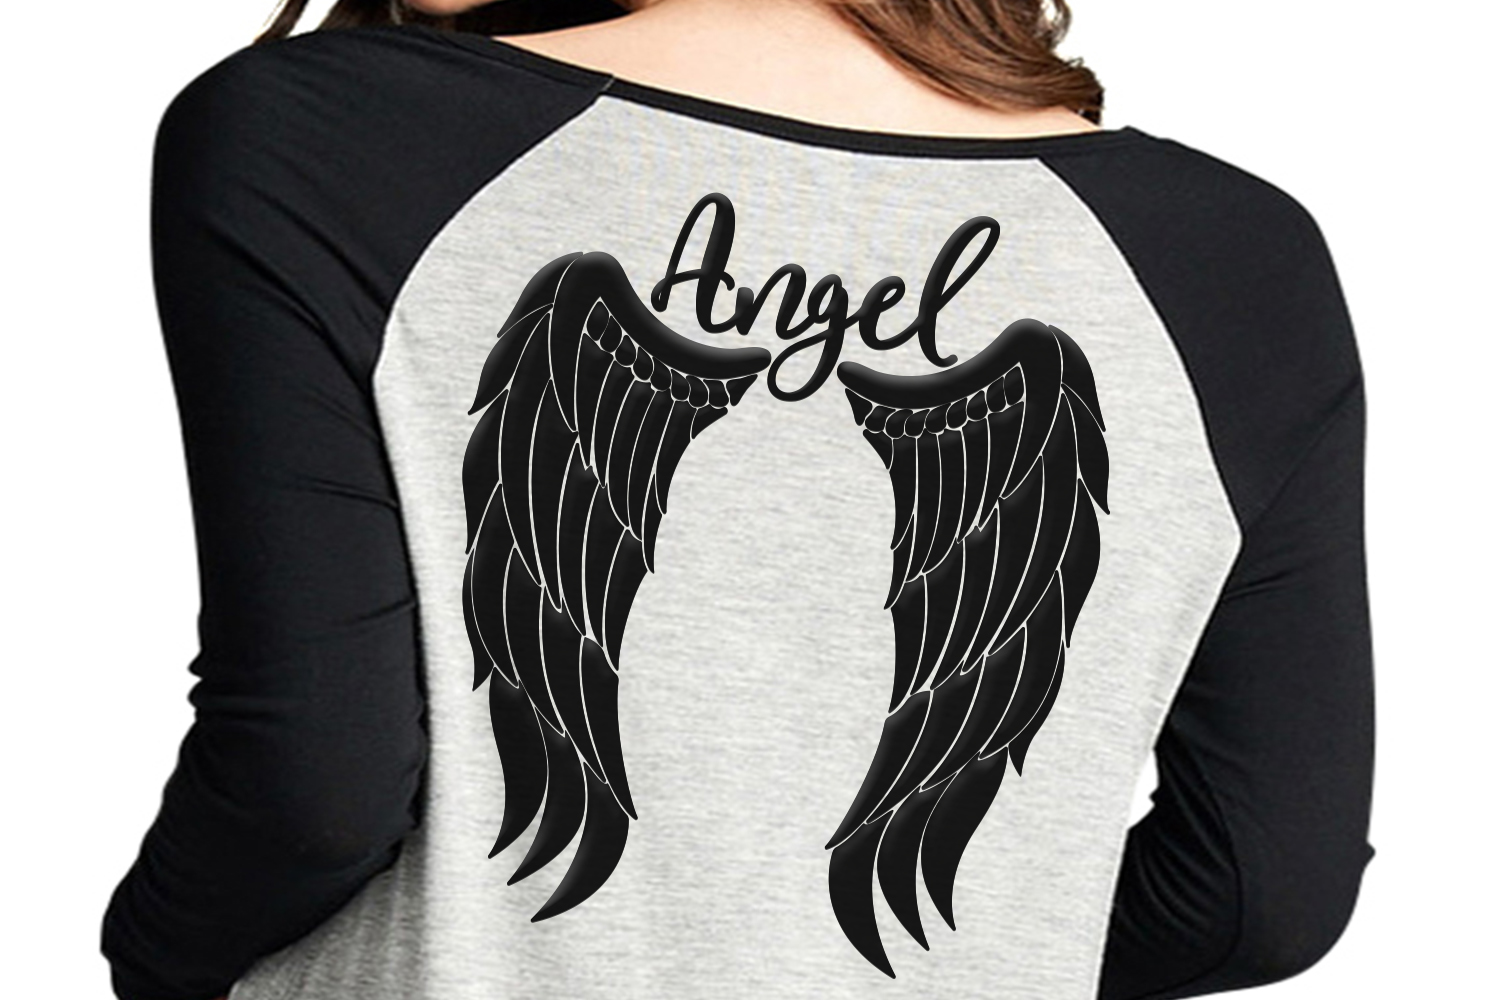 Angel wings svg, angel svg, feather wings svg, angel jpg, angel wings shirt  design, angel clipart, wings svg, dxf, png, cricut file,clip art.